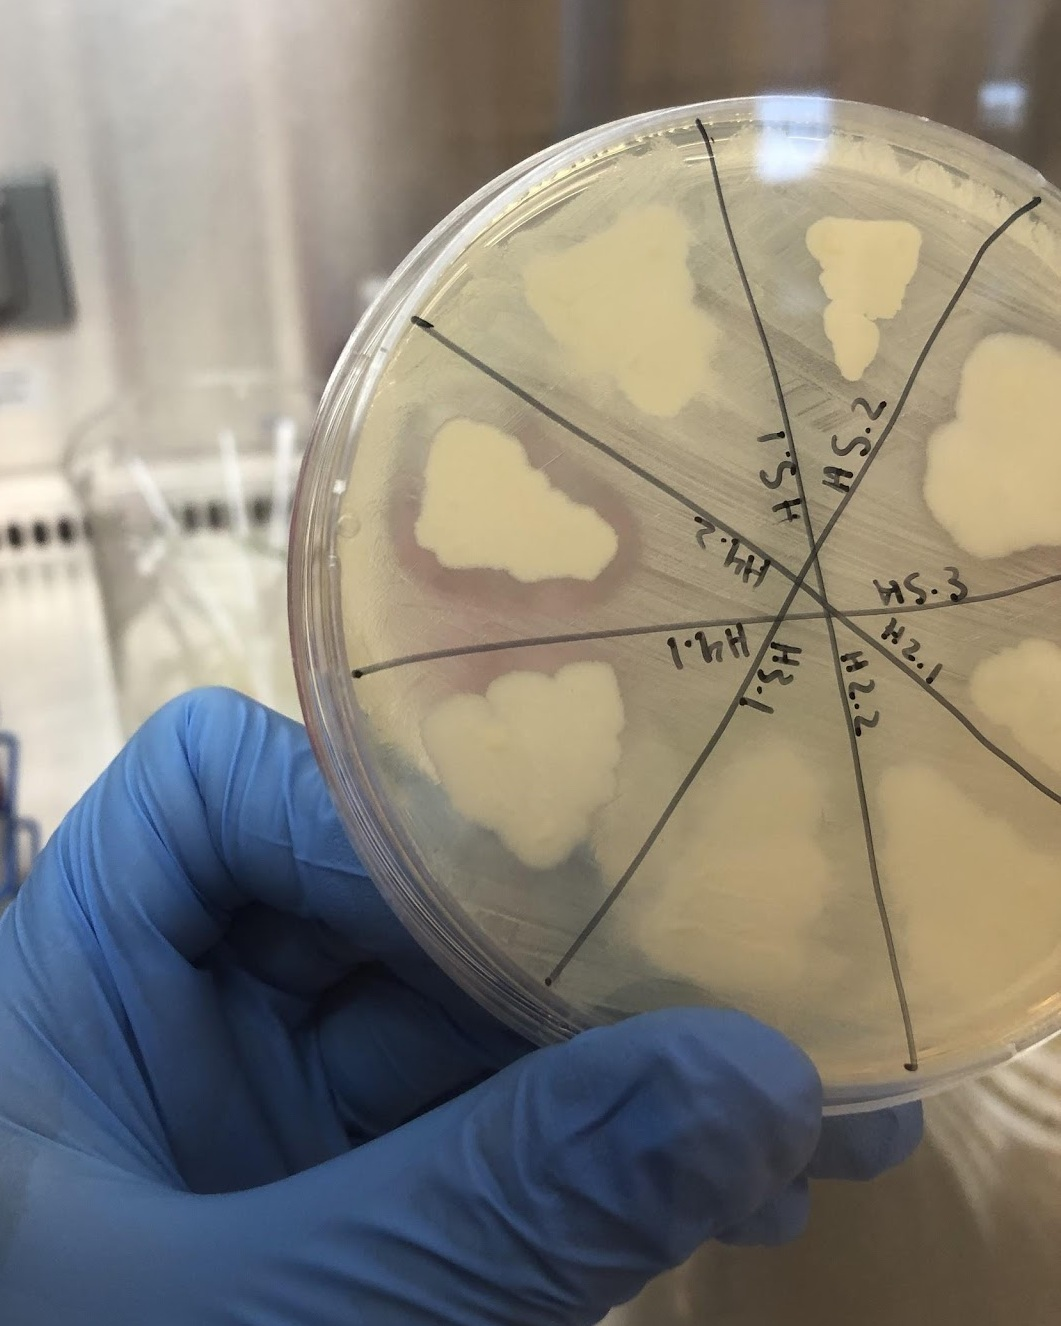 Image 2 - Zones around bacteria isolated from honey samples, on a plate with Staphylococcus aureus